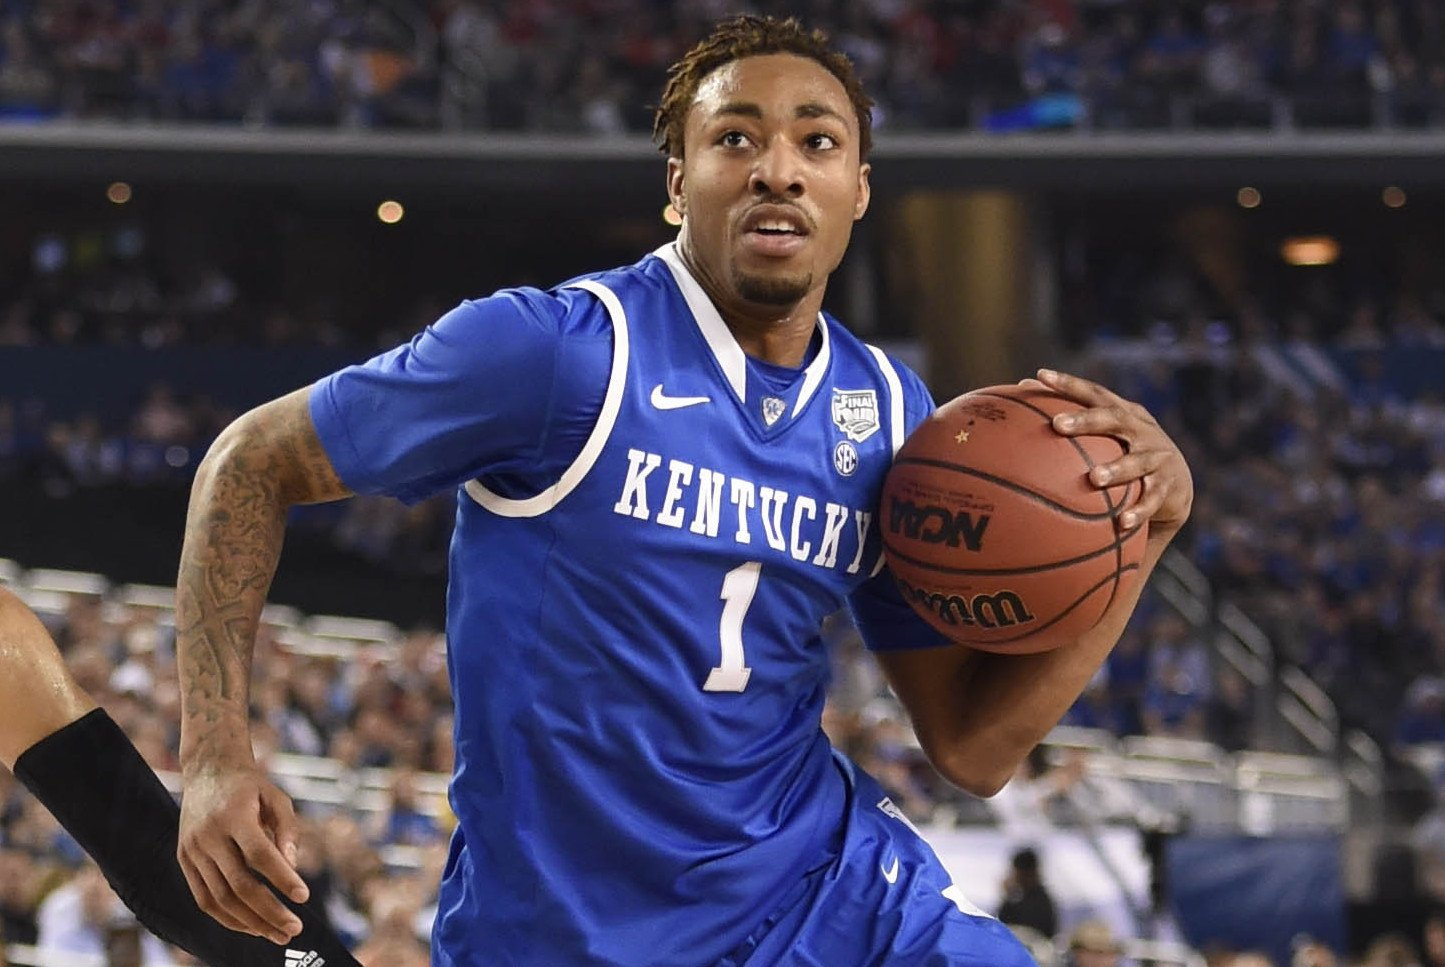 James Young NBA Draft 2014: Highlights, Scouting Report ...